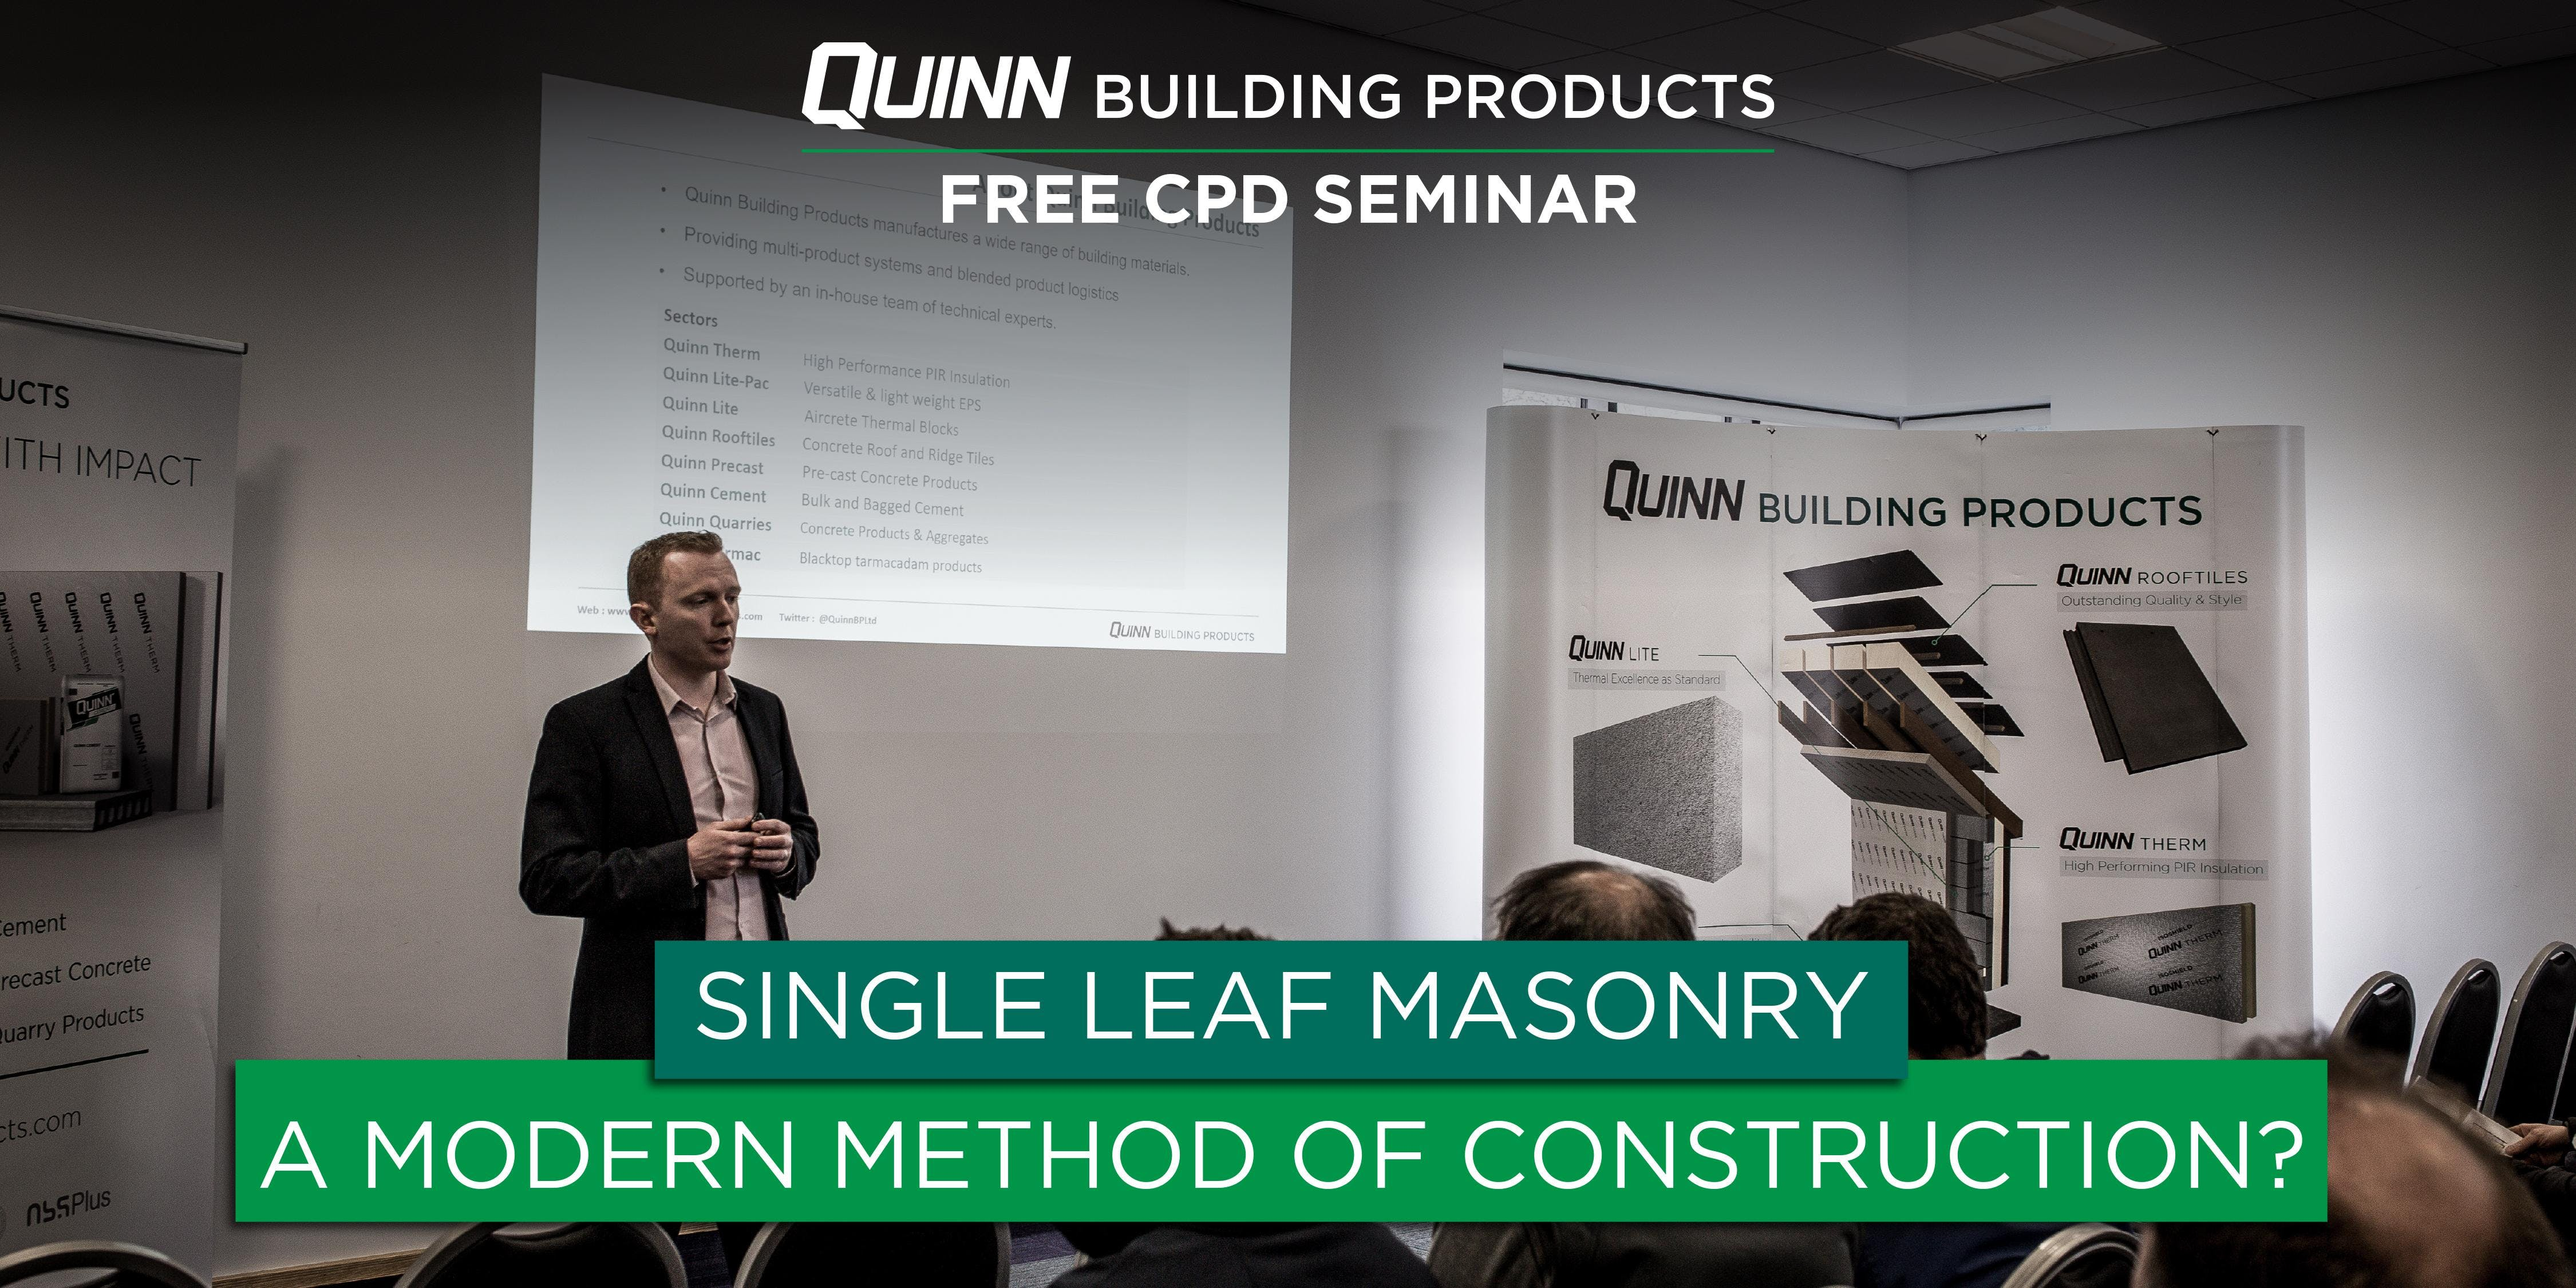 Donegal CPD Seminar: Single Leaf Masonry - A Modern Method of Construction?